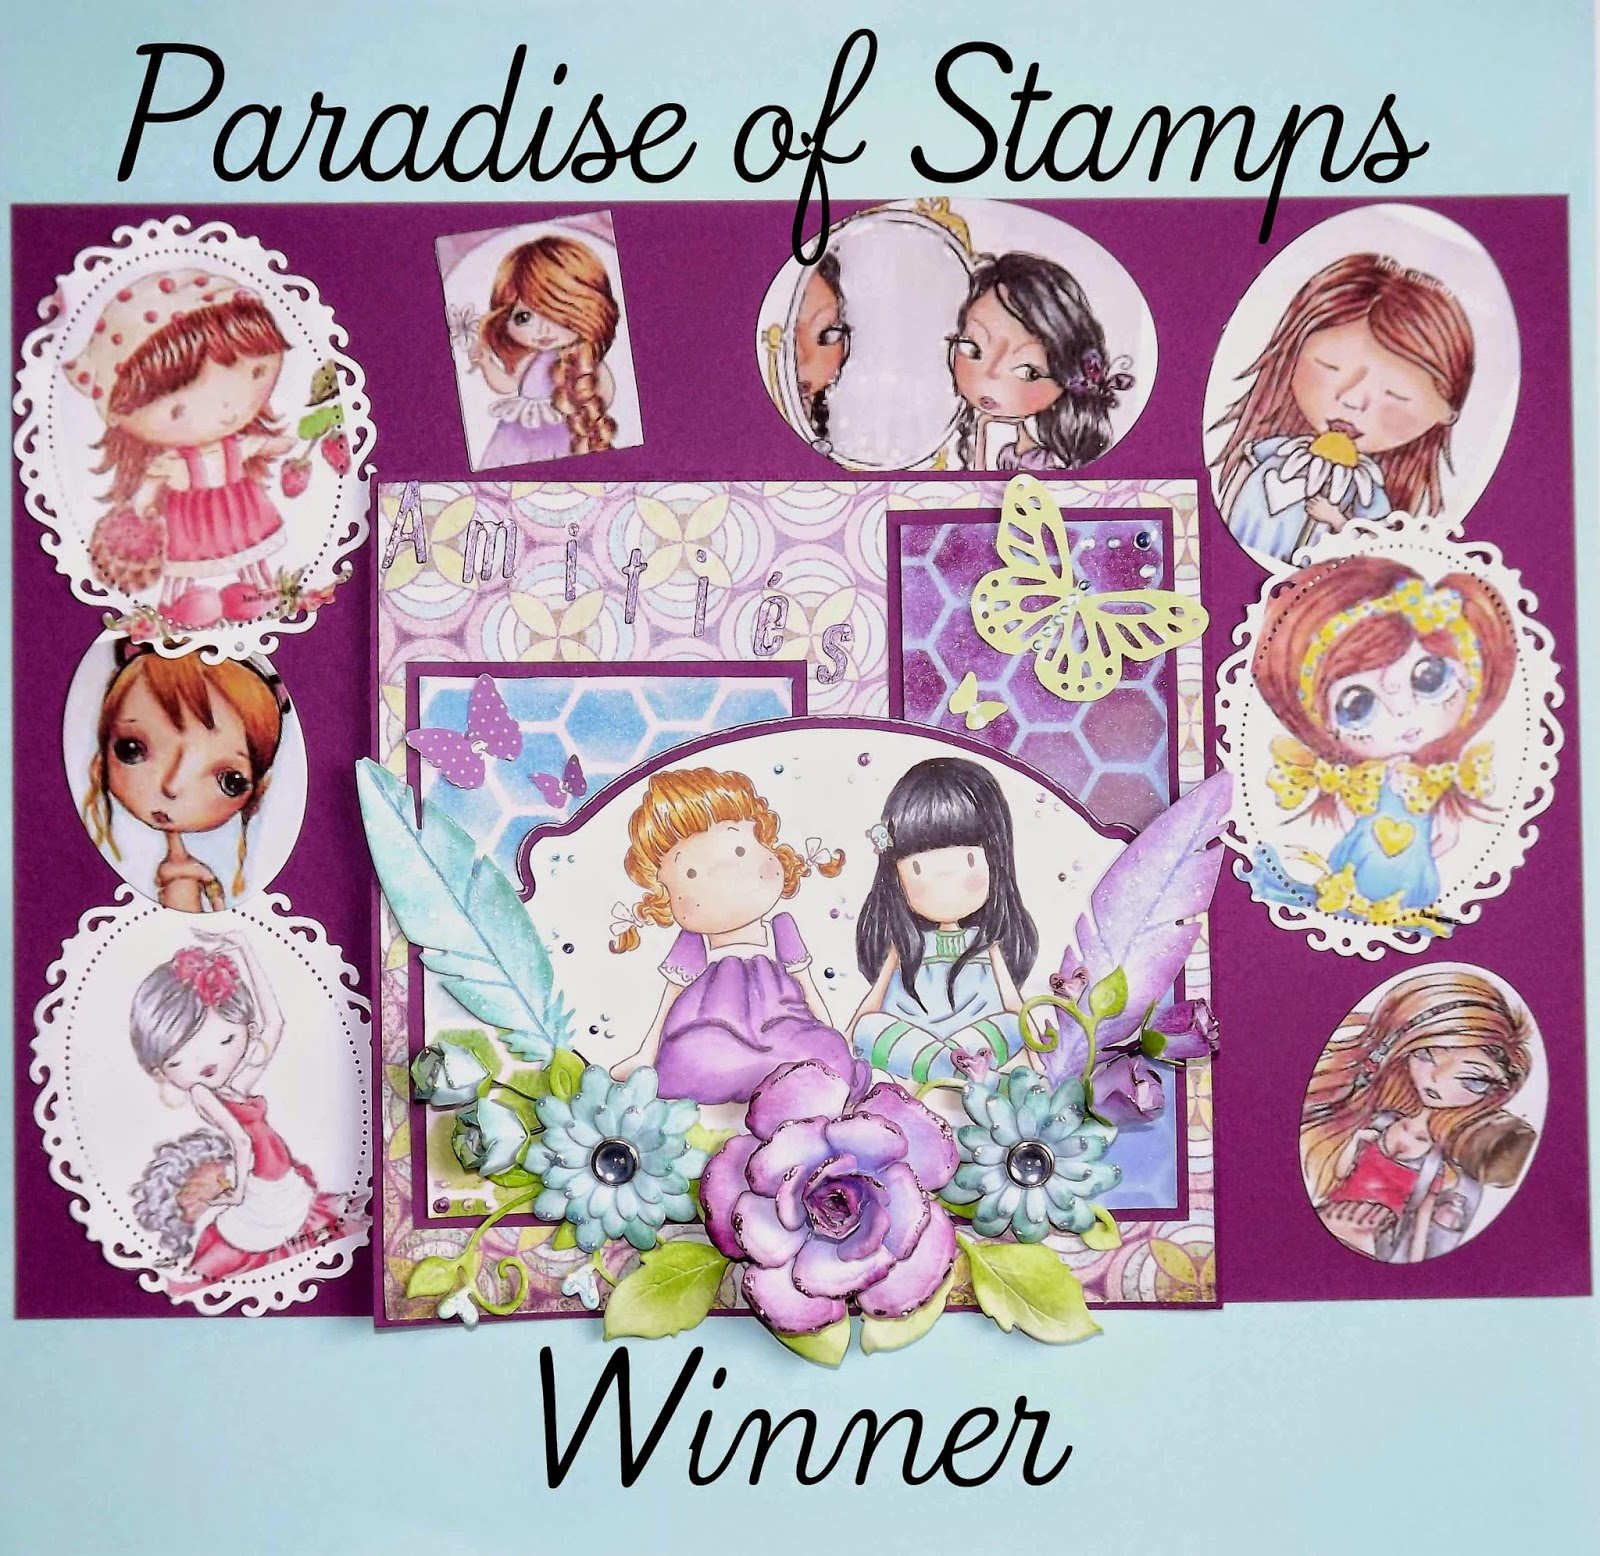 Paradise of Stamp - Random Winner